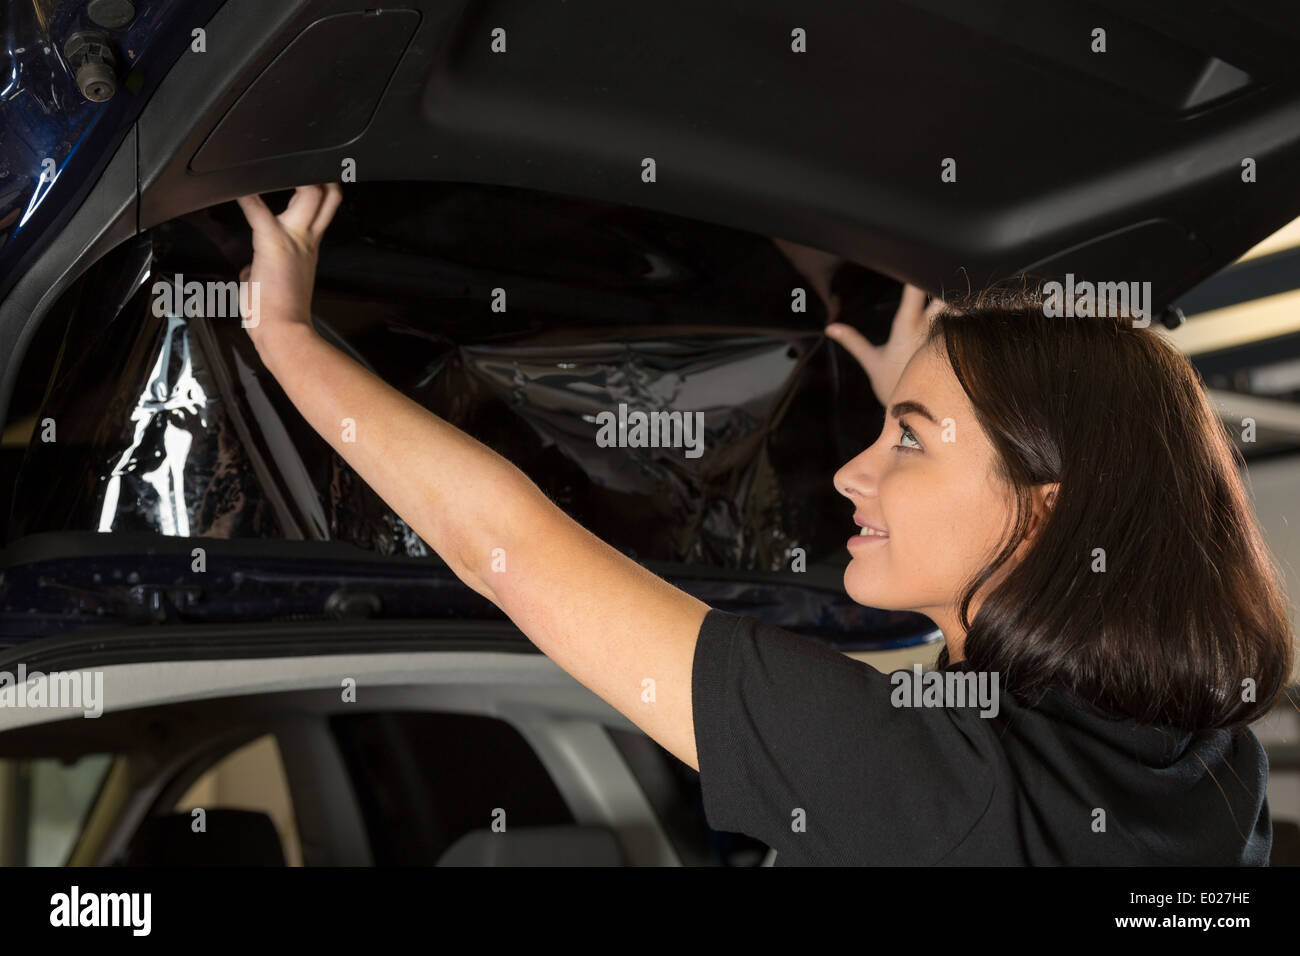 Car wrapping specialist attaching tinting foil to car window Stock Photo